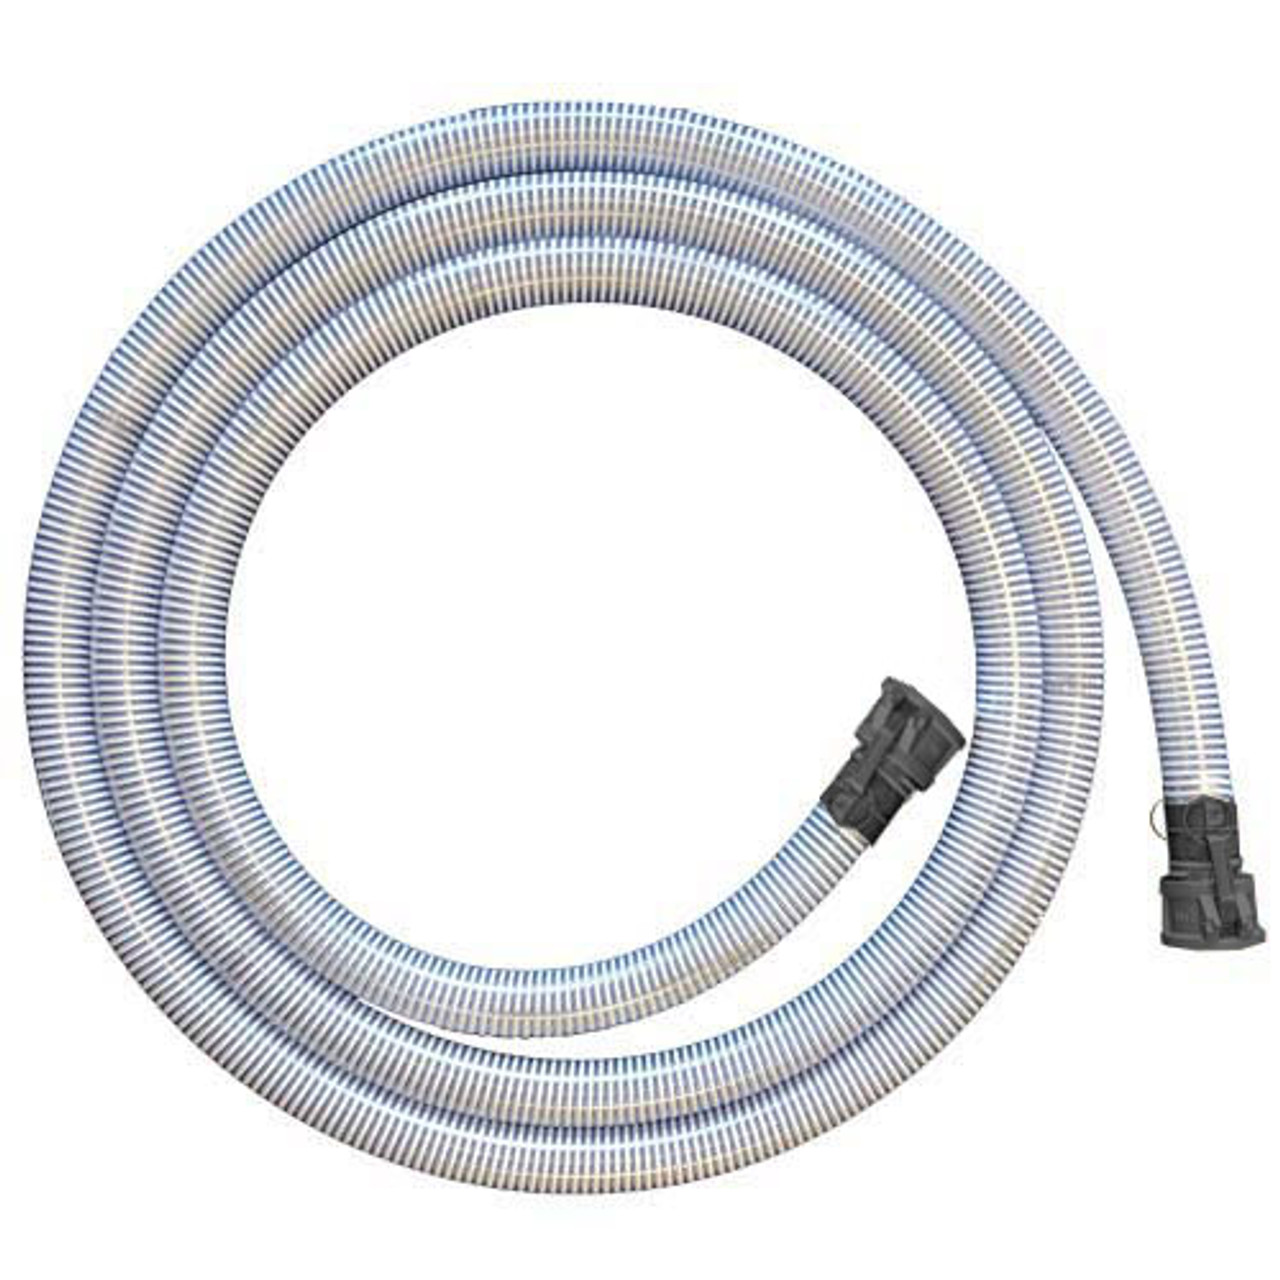 25 ft Discharge Hose with Quick Connects for Lawn Irrigation Pump